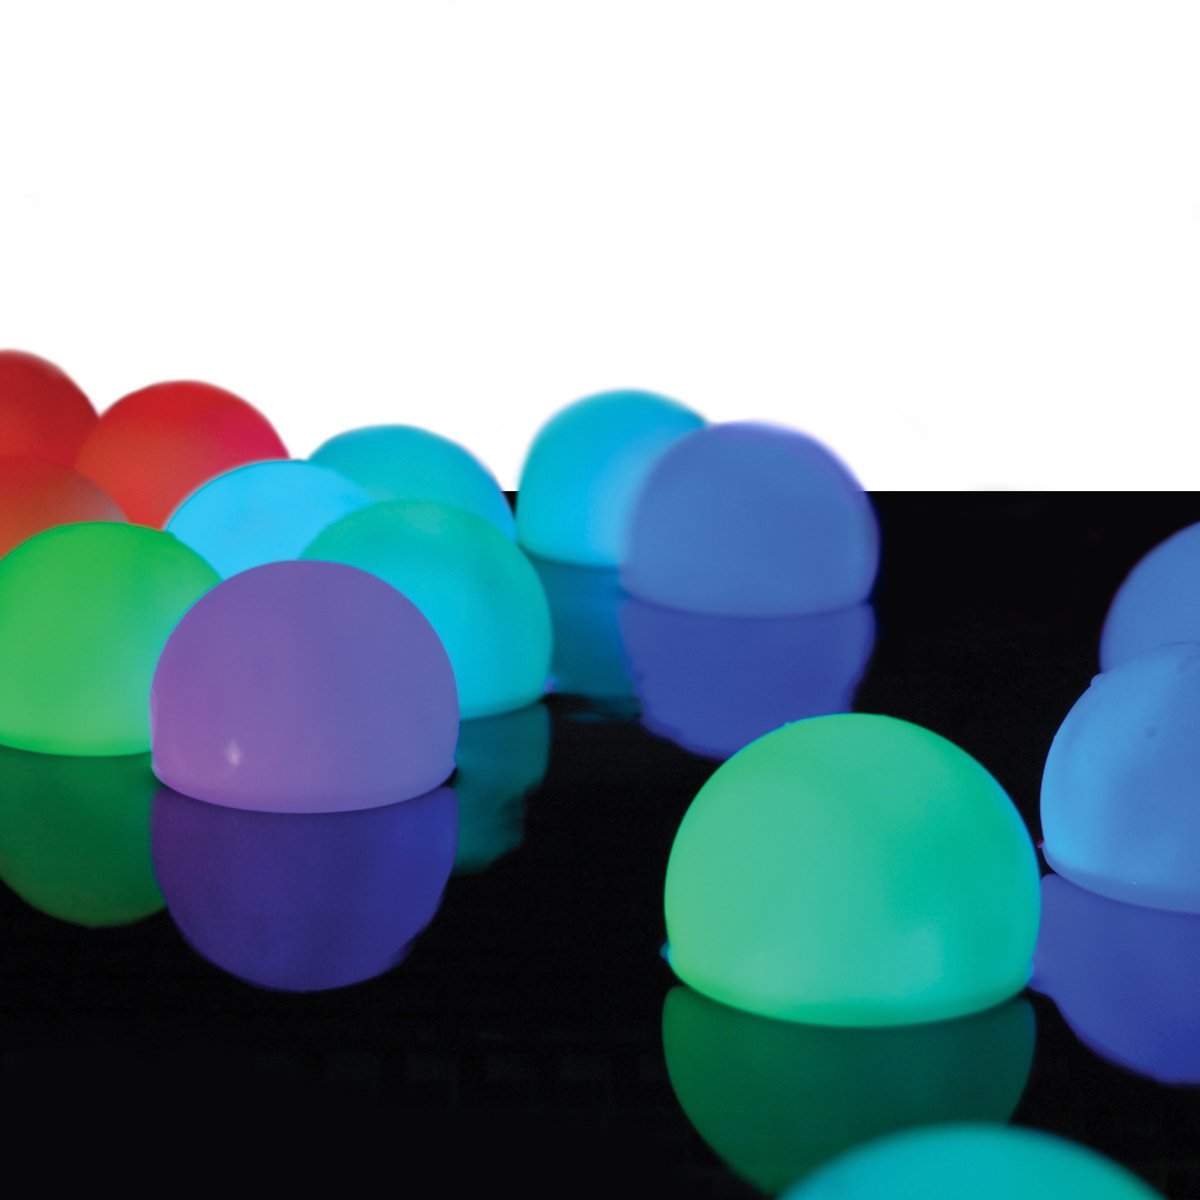 "Set of 12 Mood Light Garden Deco Balls- Battery Operated 3"" Floating Color Changing LED Balls for Pools, Ponds & More"